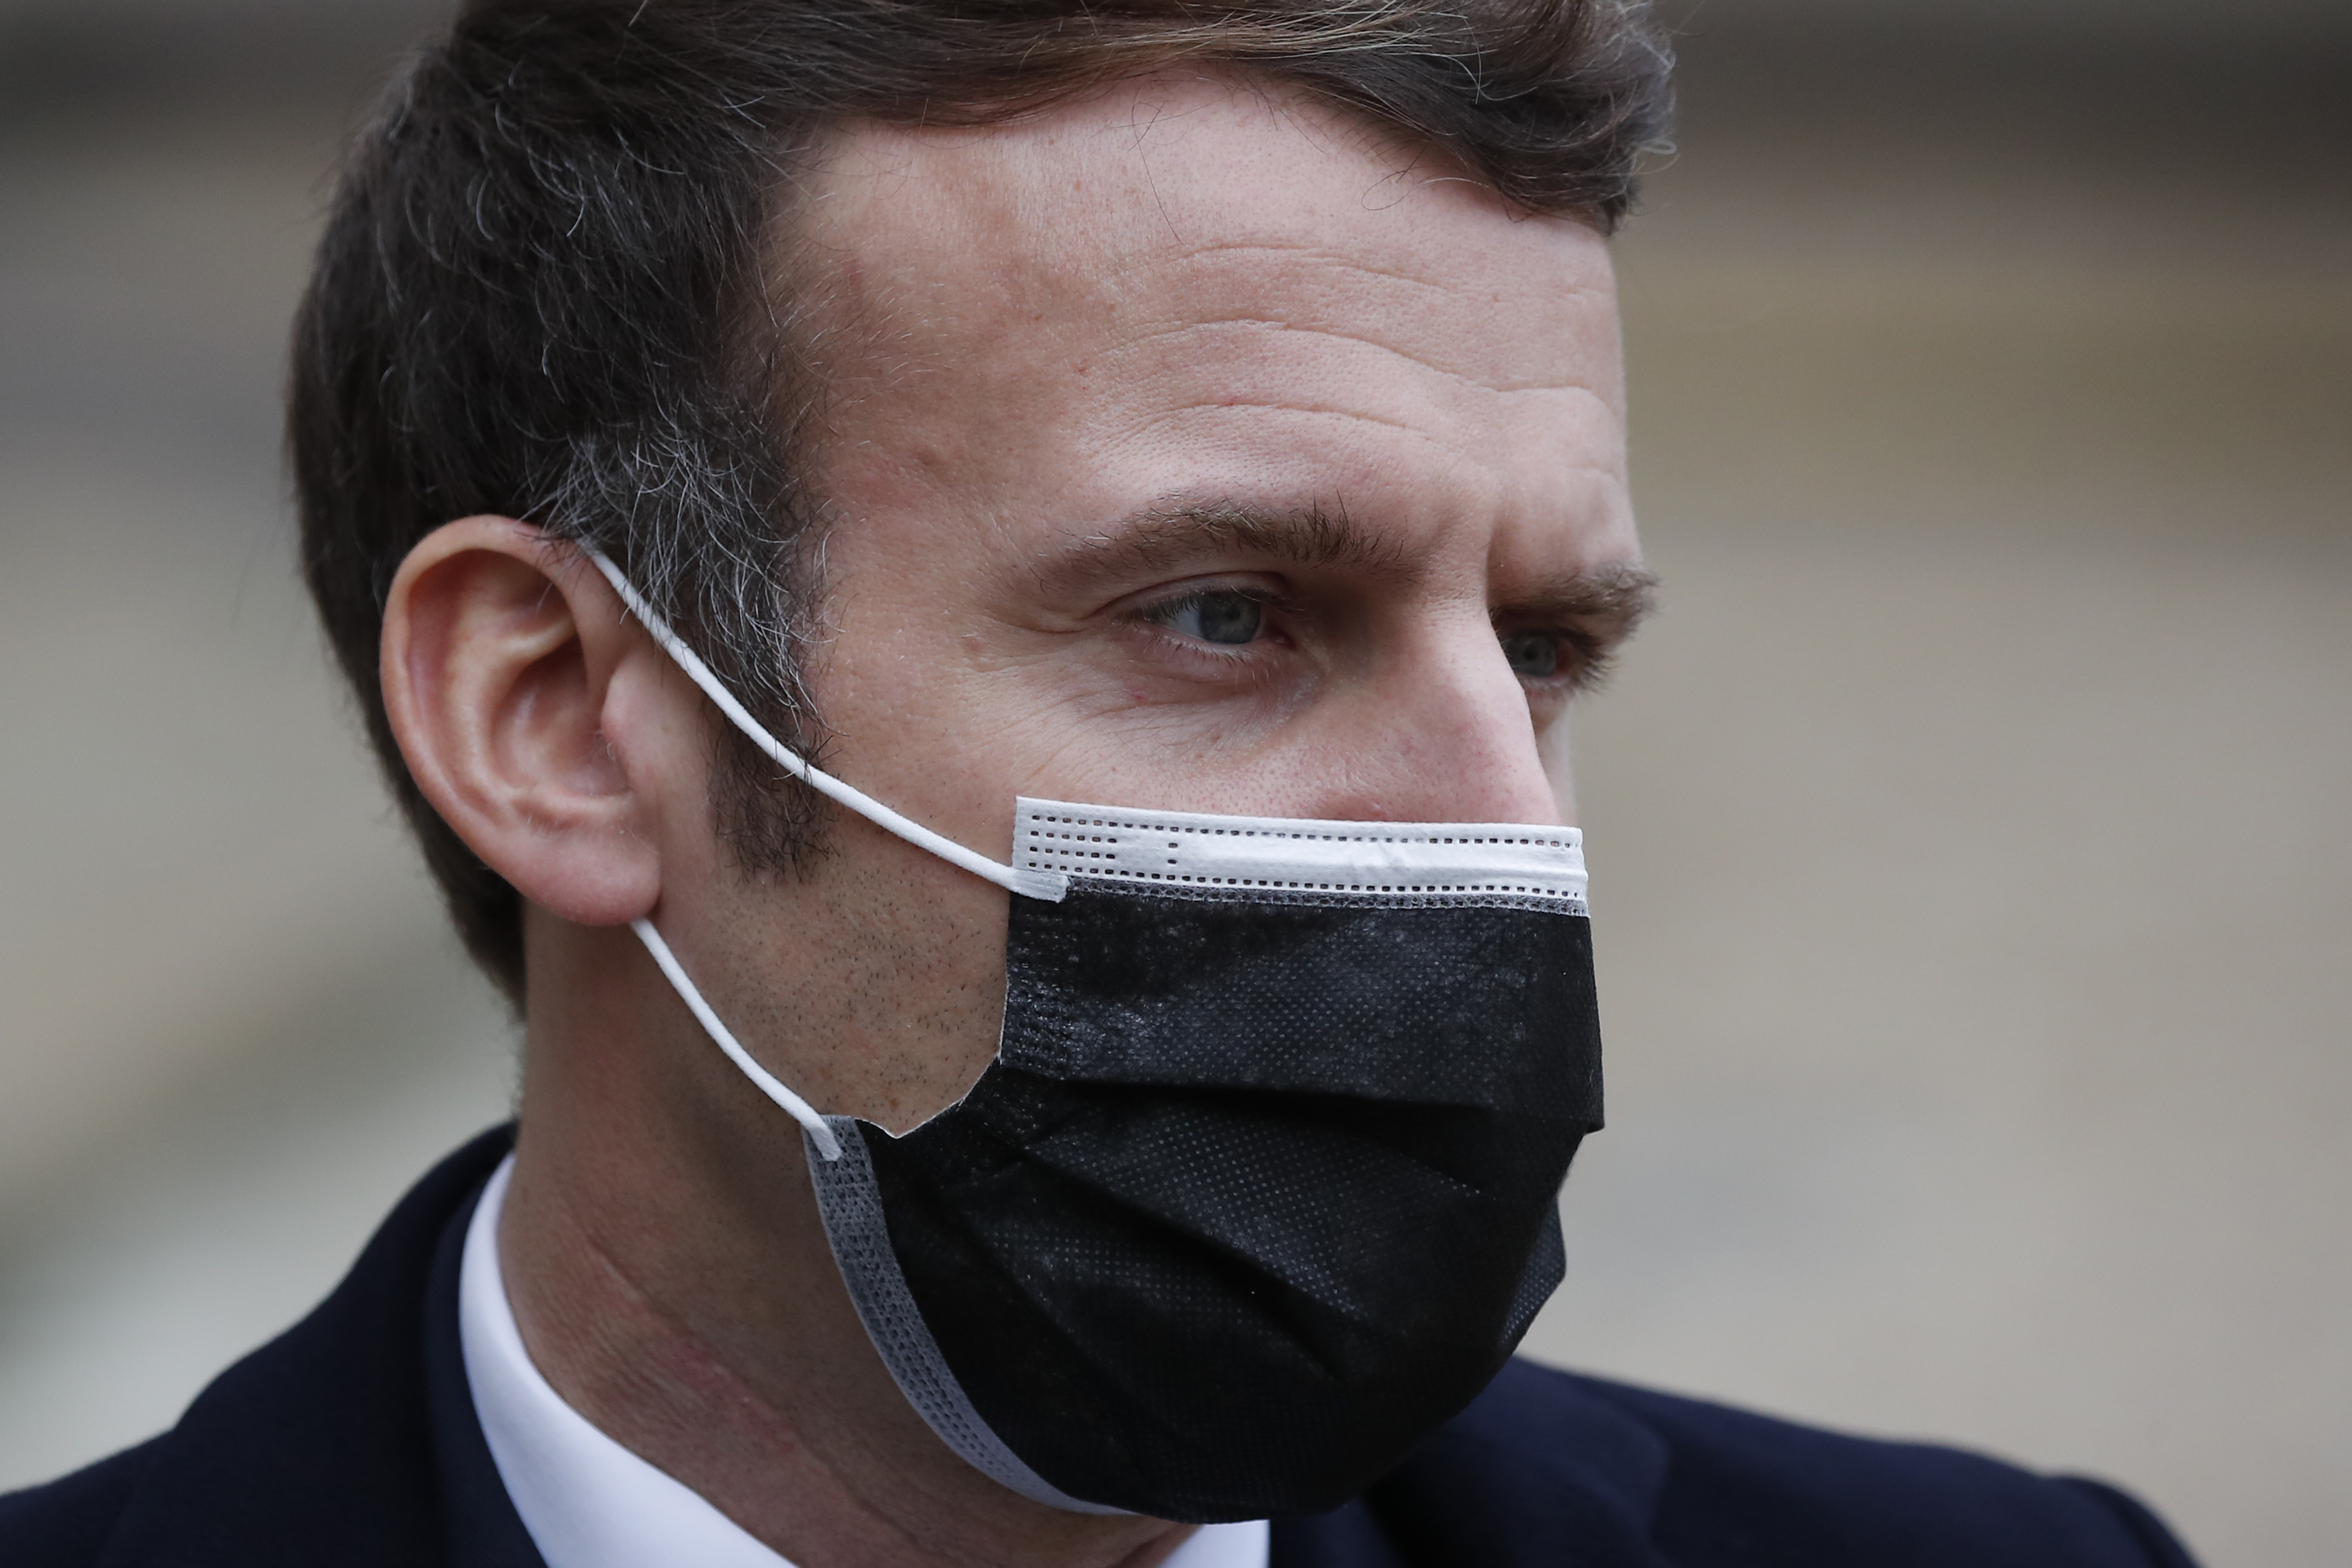 Macron vows France will 'never give in' to 'Islamist terrorism' after deadly knife attack – Fox News